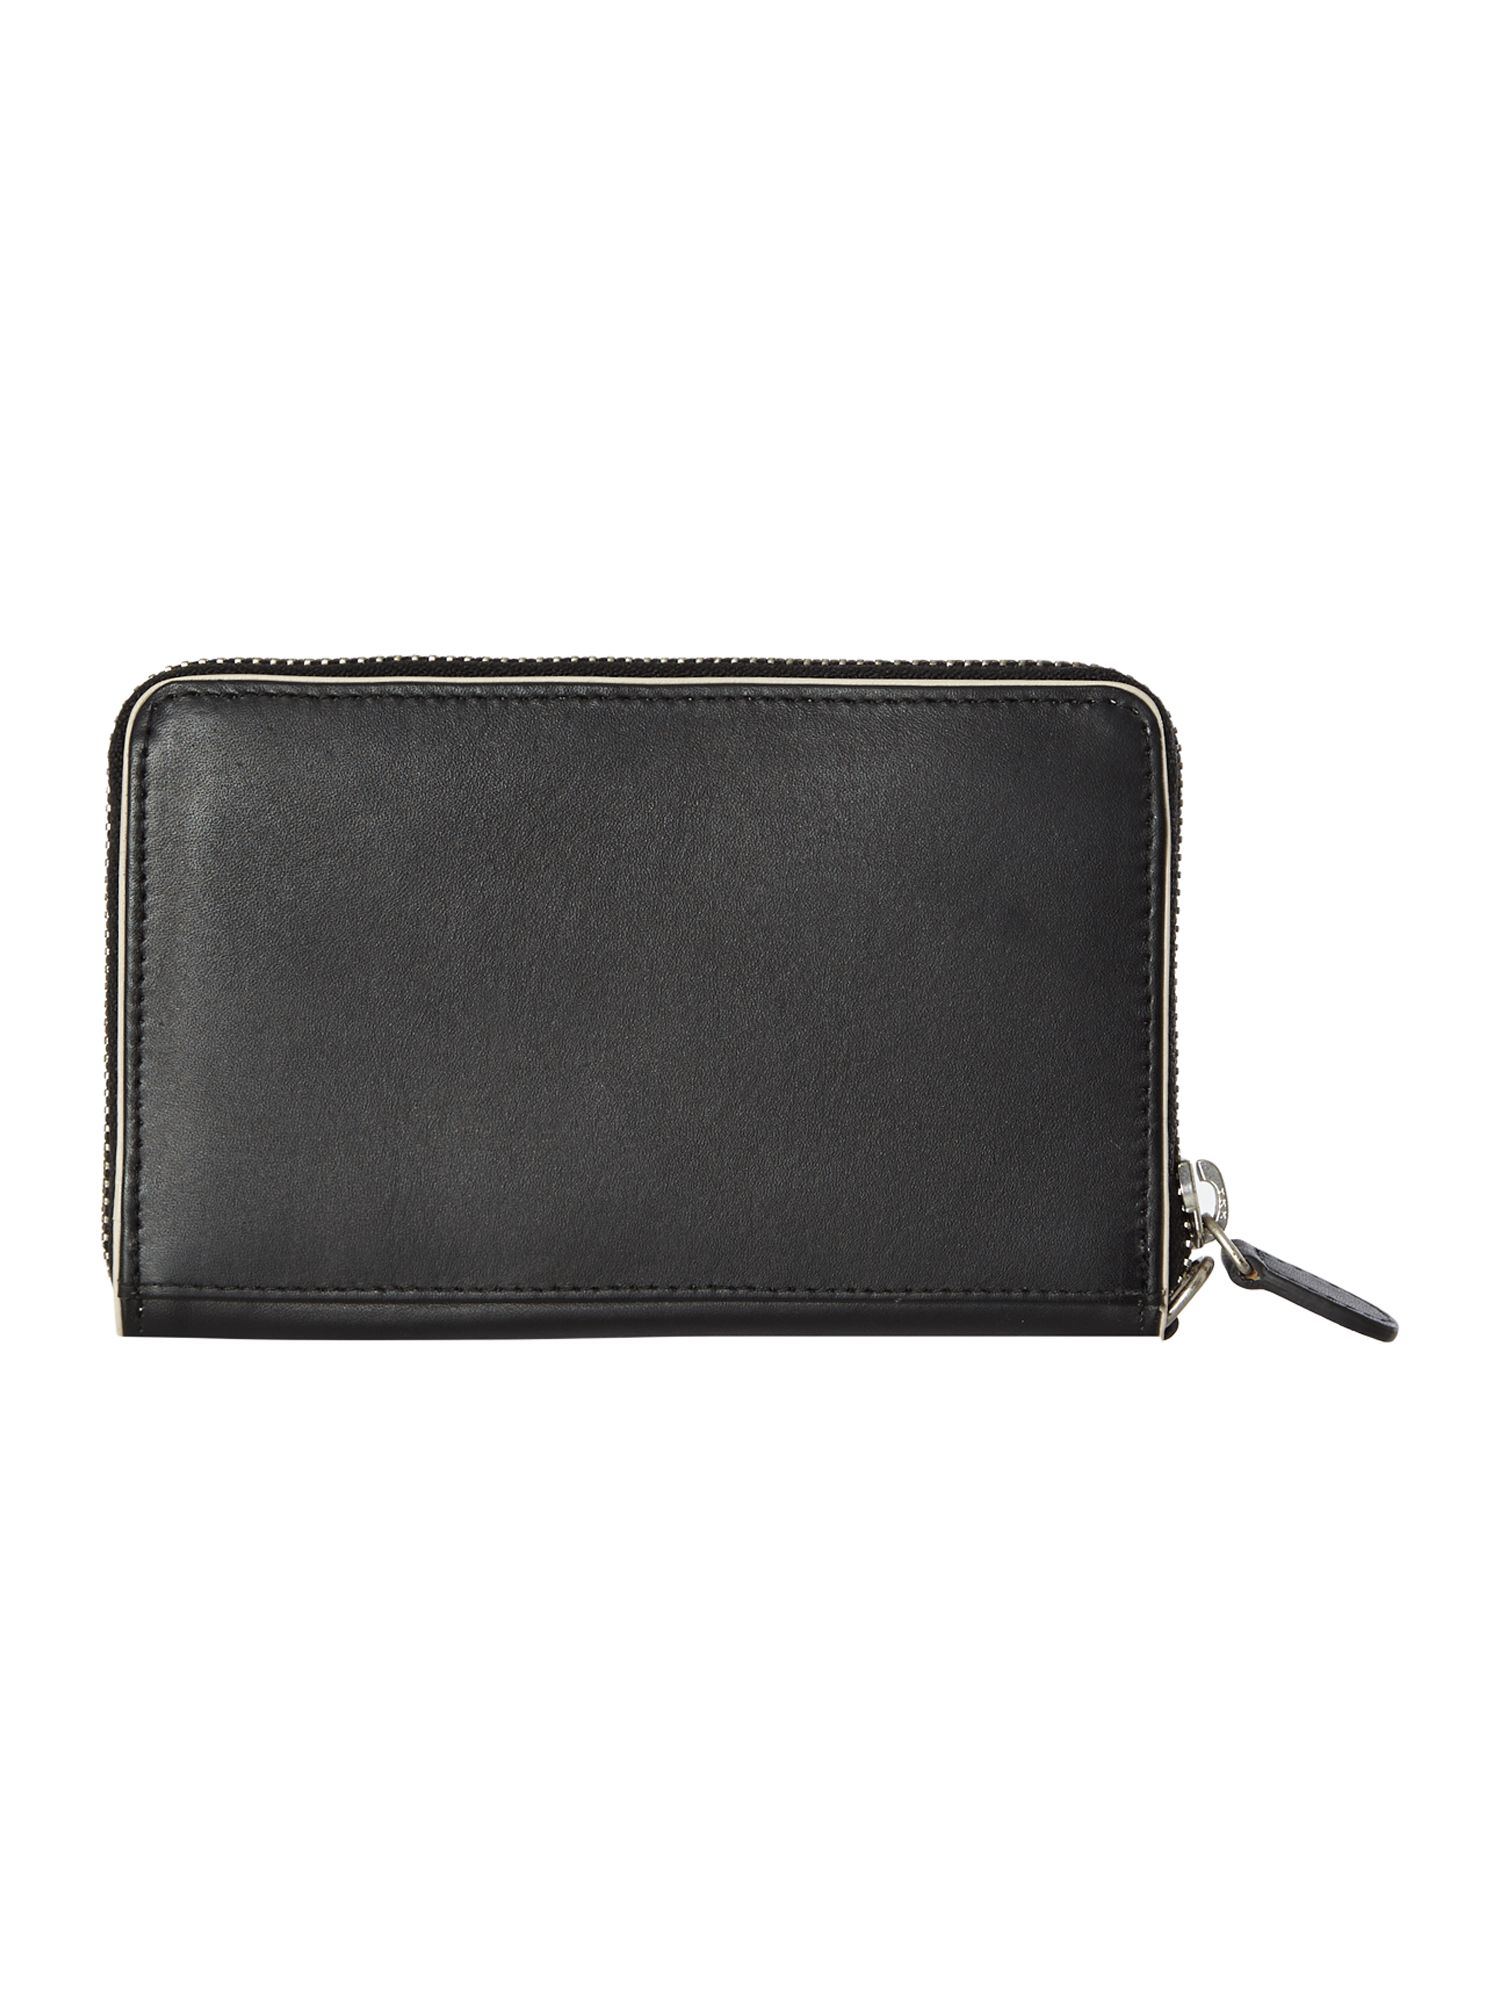 Blair black medium zip wristlet